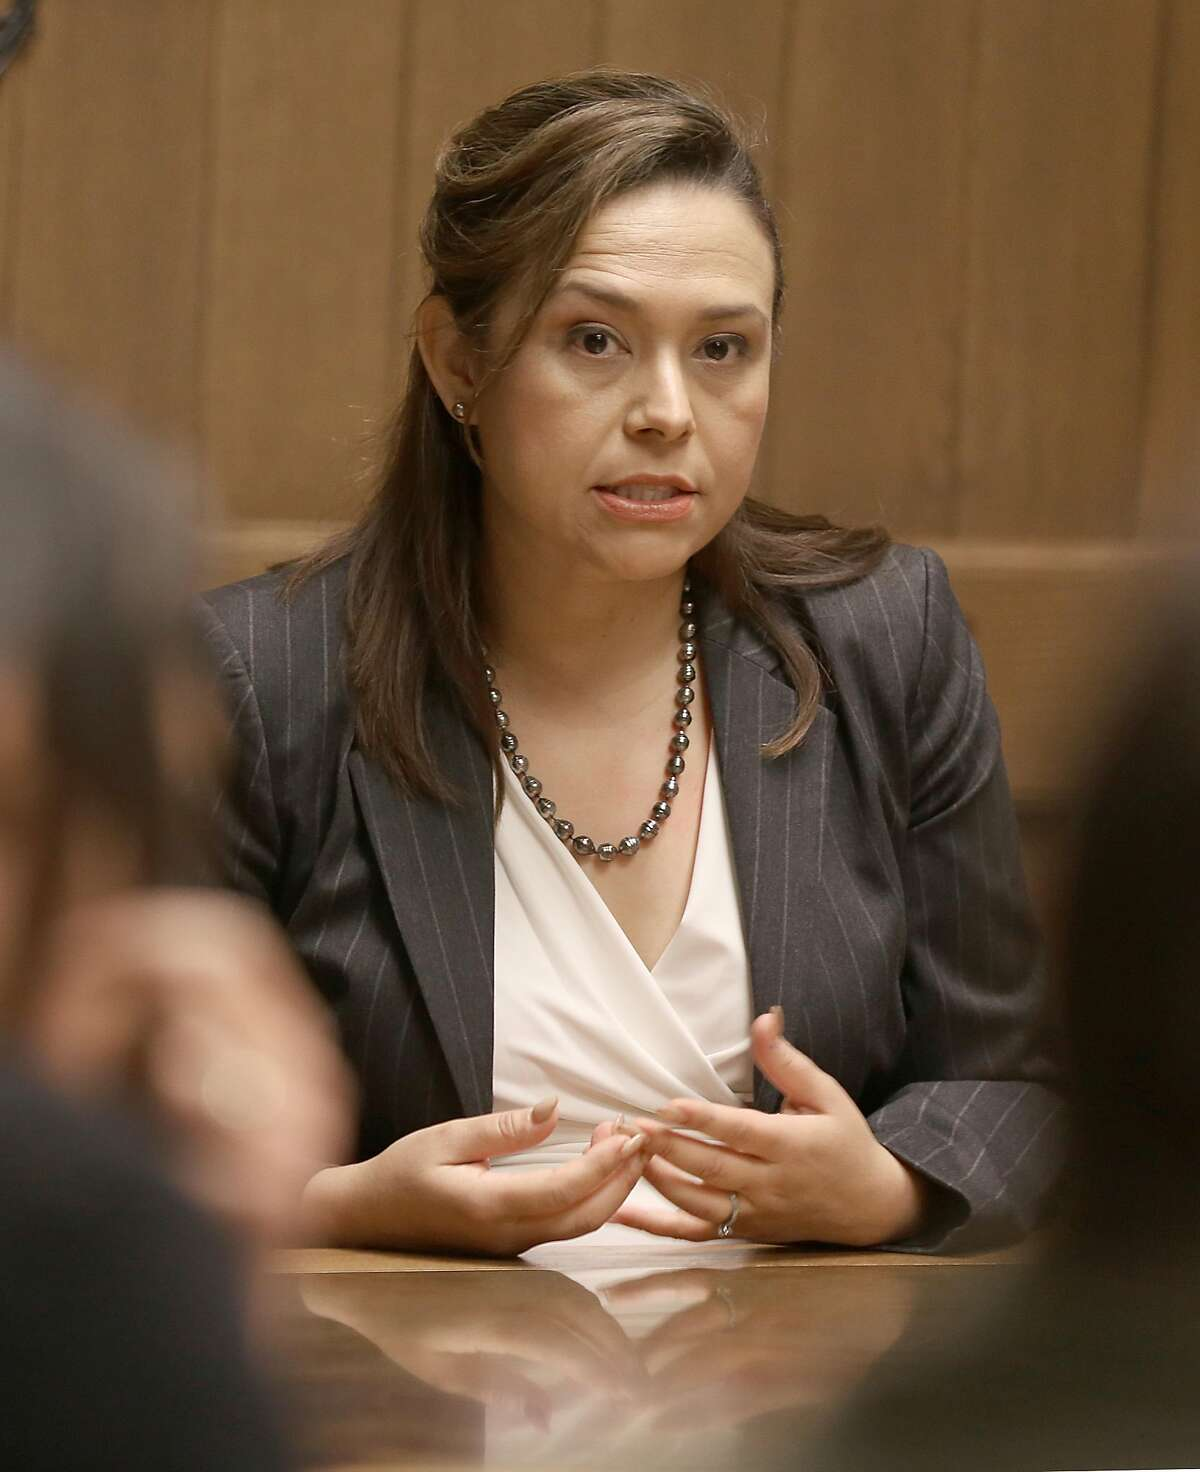 Maria Elena Evangelista, candidate running for superior court judge speaks in the board room of the Chronicle on Friday, March 9, 2018, in San Francisco, Calif.